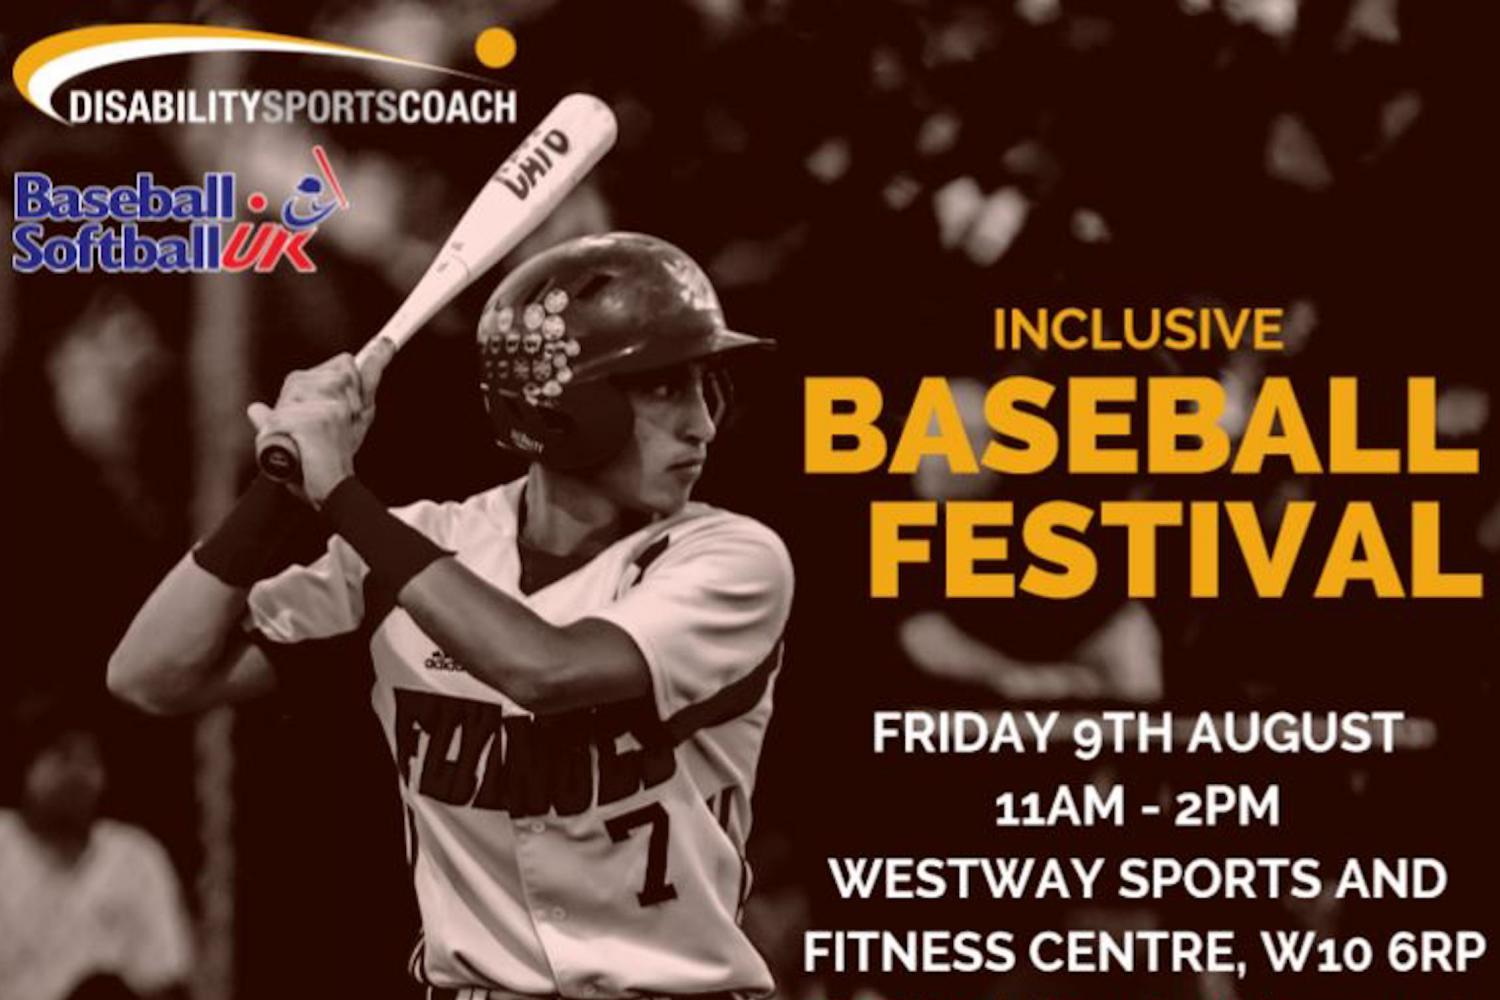 Disability Sports Coach Baseball Softball UK - Inclusive Baseball Festival 2019